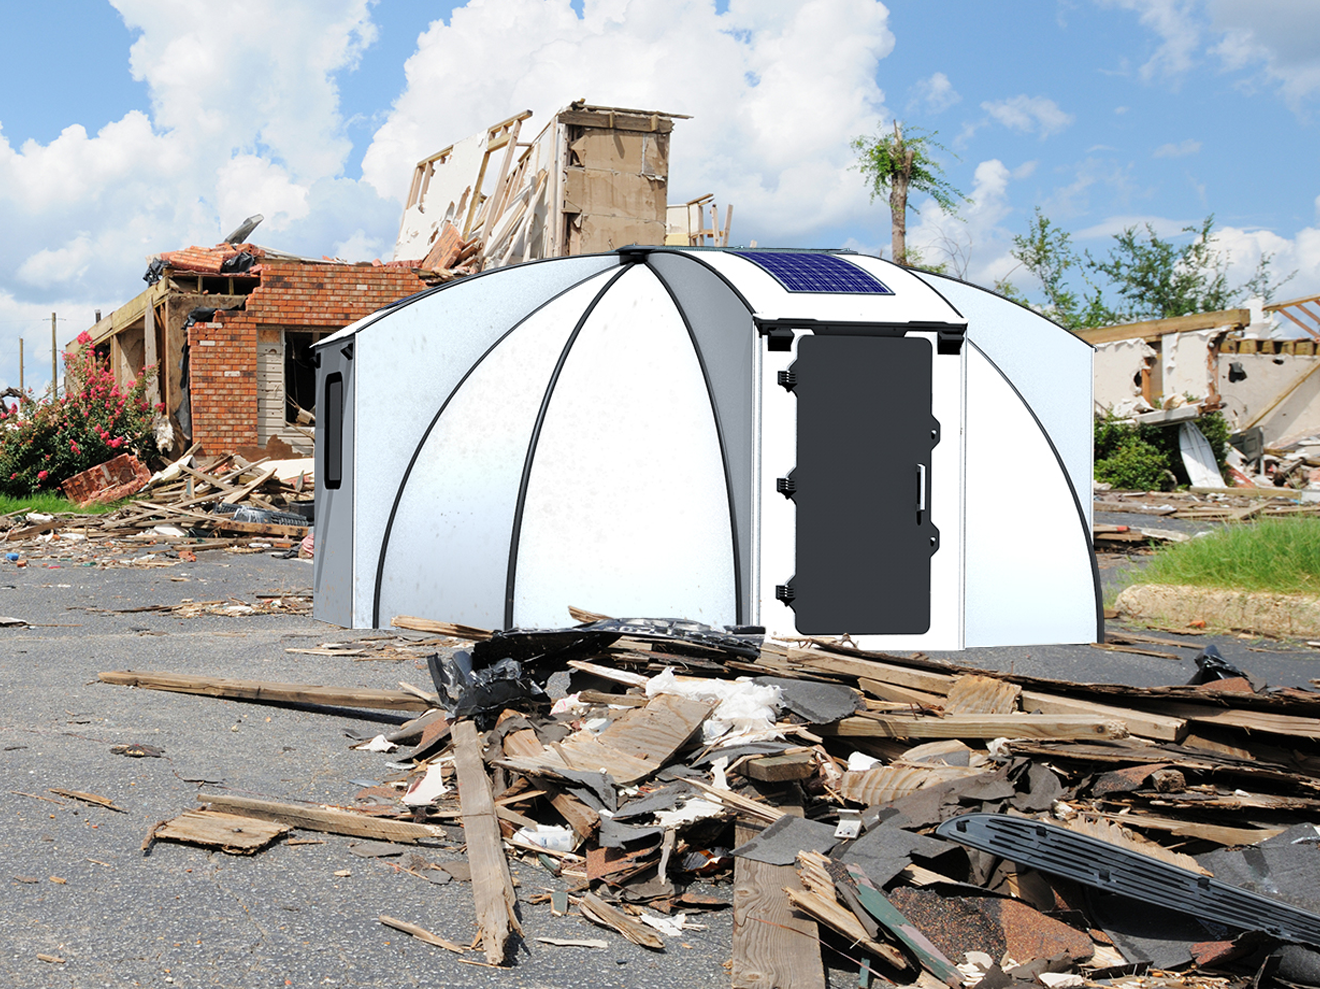 Why the FlexDome? - The FlexDome was originally developed for humanitarian purposes, in response to the 2018 refugee crisis in Europe. We wanted to provide a durable, affordable, flame resistant living solution for families stuck in tents (or worse). Since we have established our company, Capsolate Pty Ltd in 2018, we have realised that the product has multiple other applications; so we are making it available to other markets.